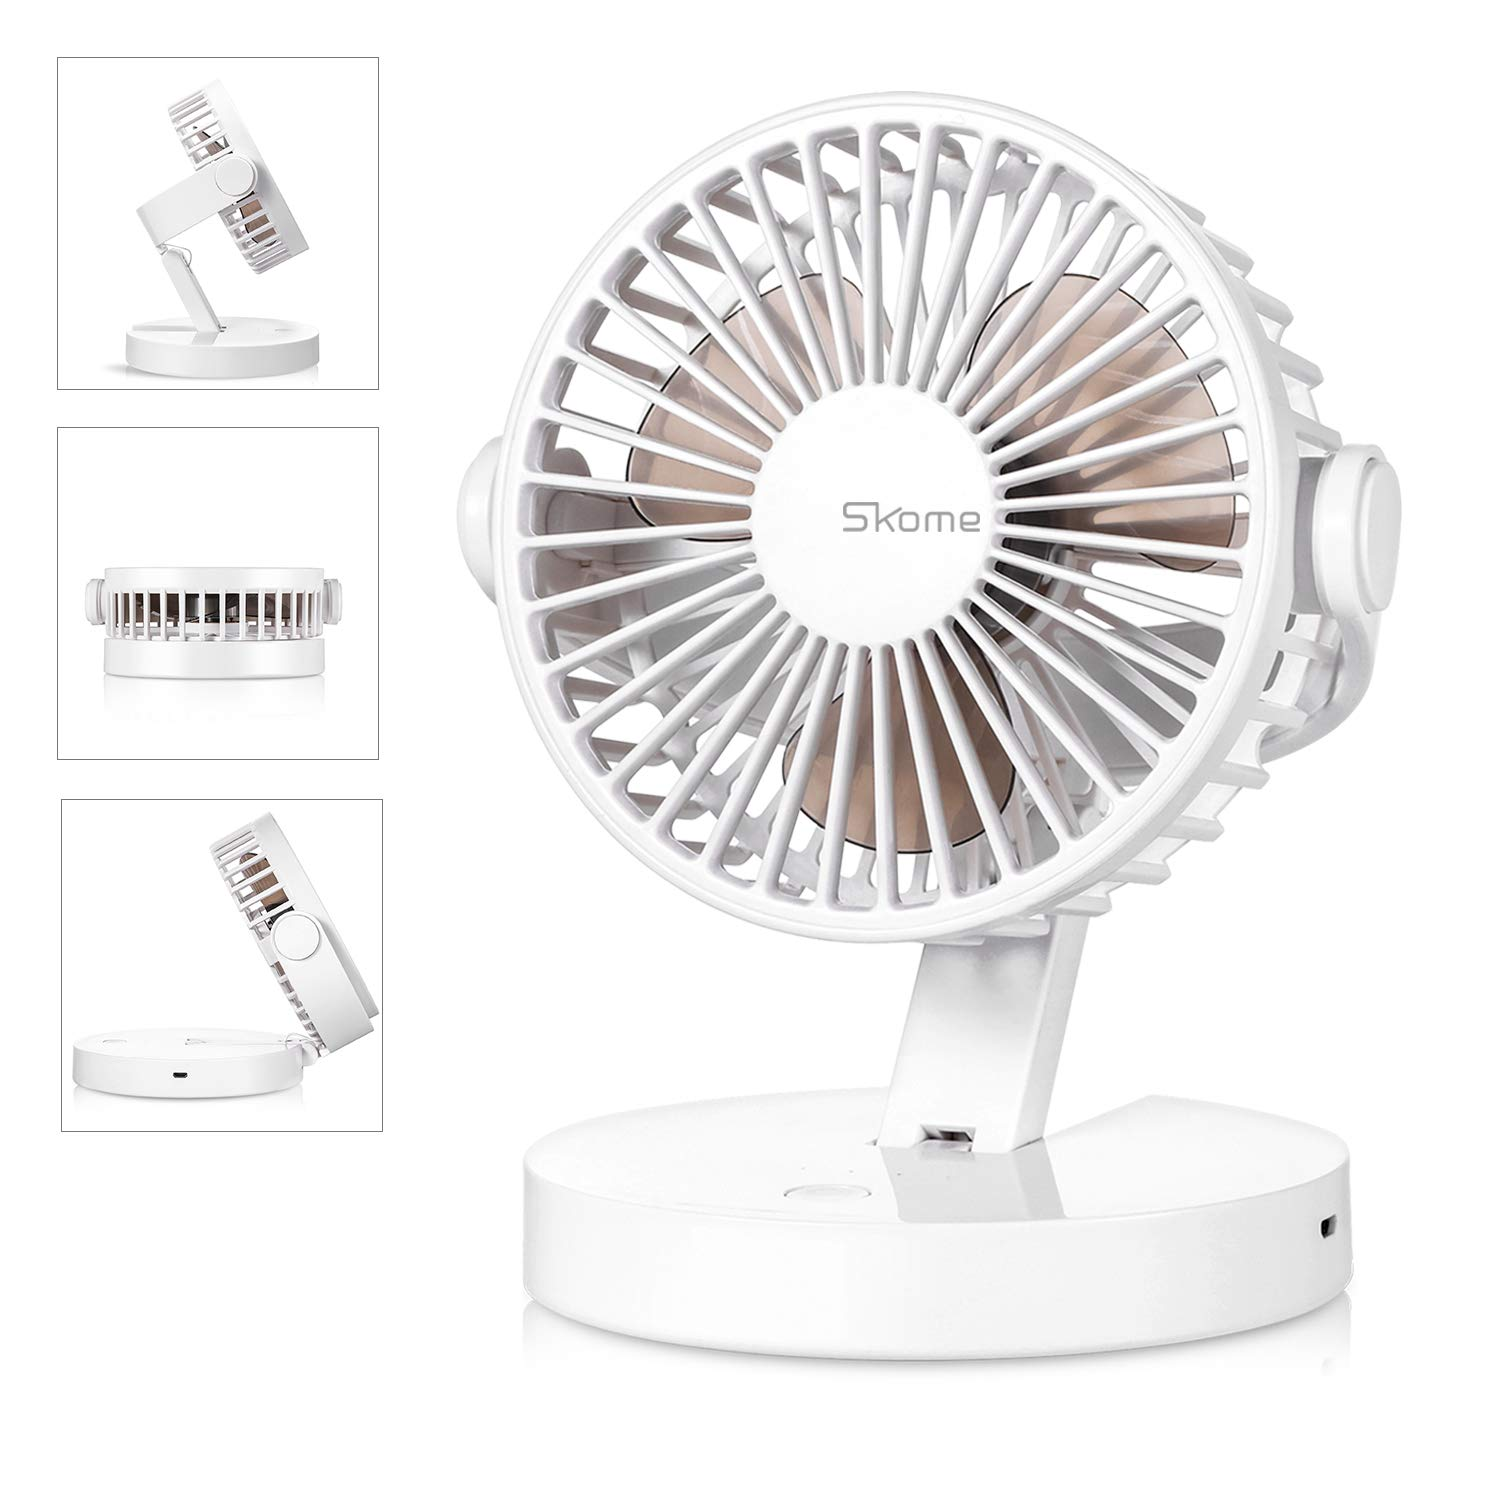 SKOME Battery Operated Fan Desk Fan Small Quiet with 3 Speeds Rechargeable or USB Powered Table Fan for Home, Office, Travel, Camping, White